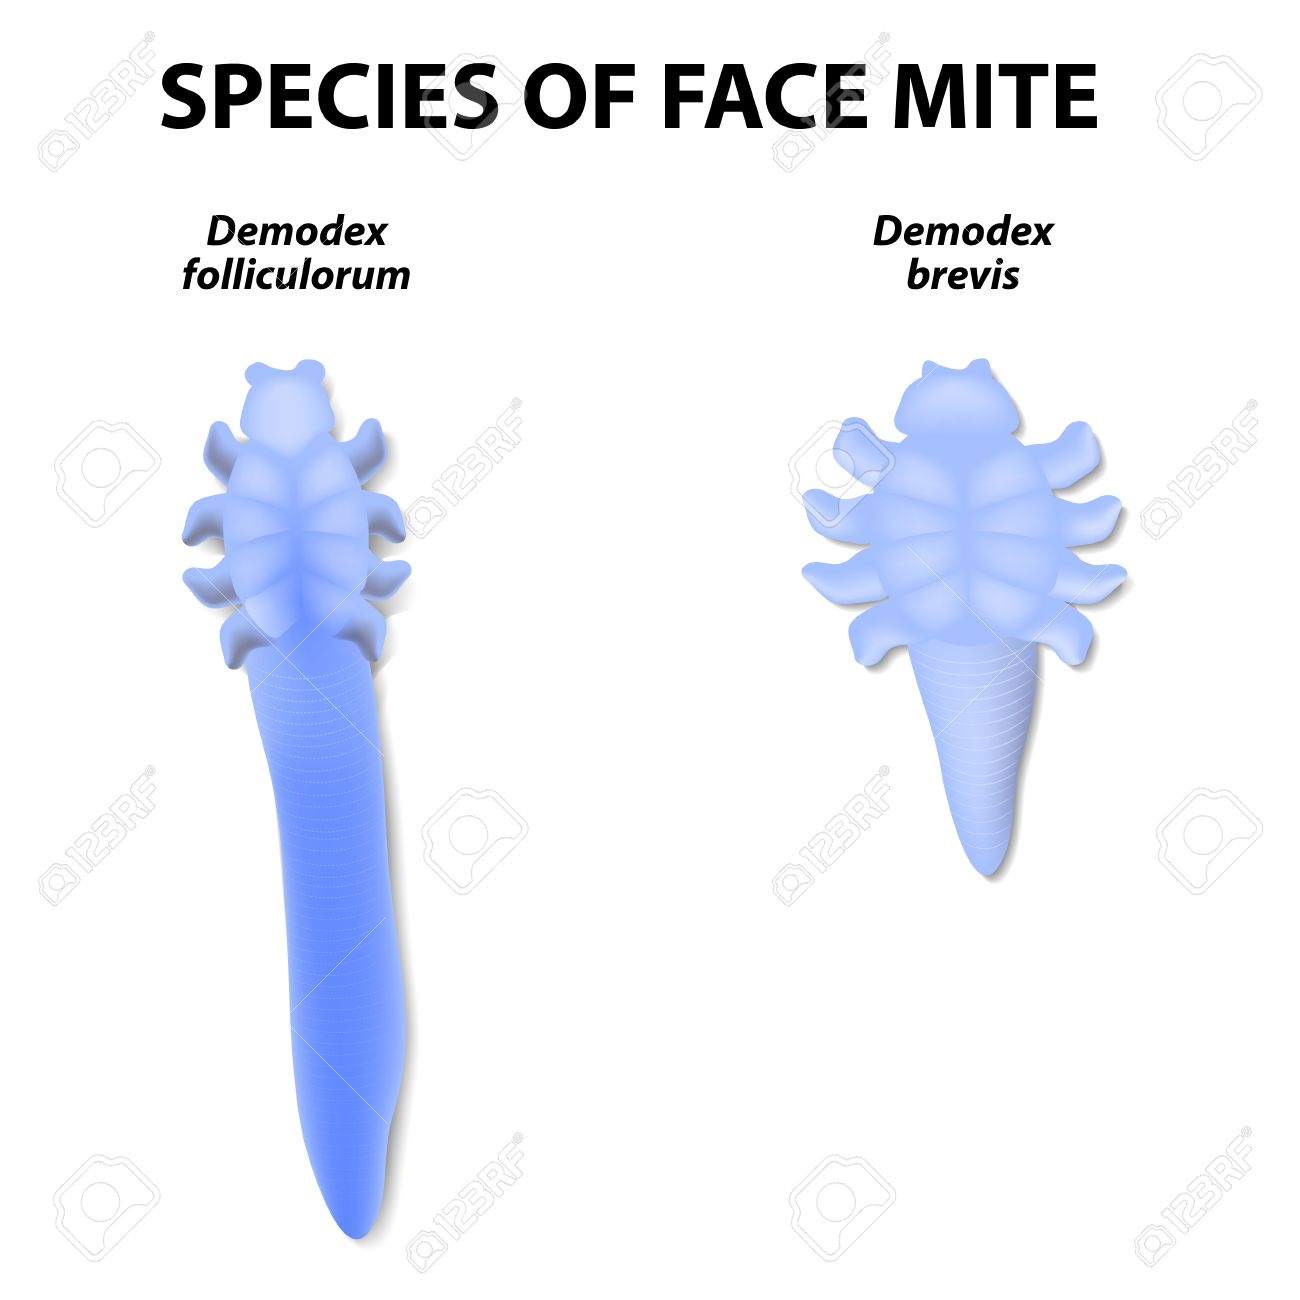 Subcutaneous mite on the face